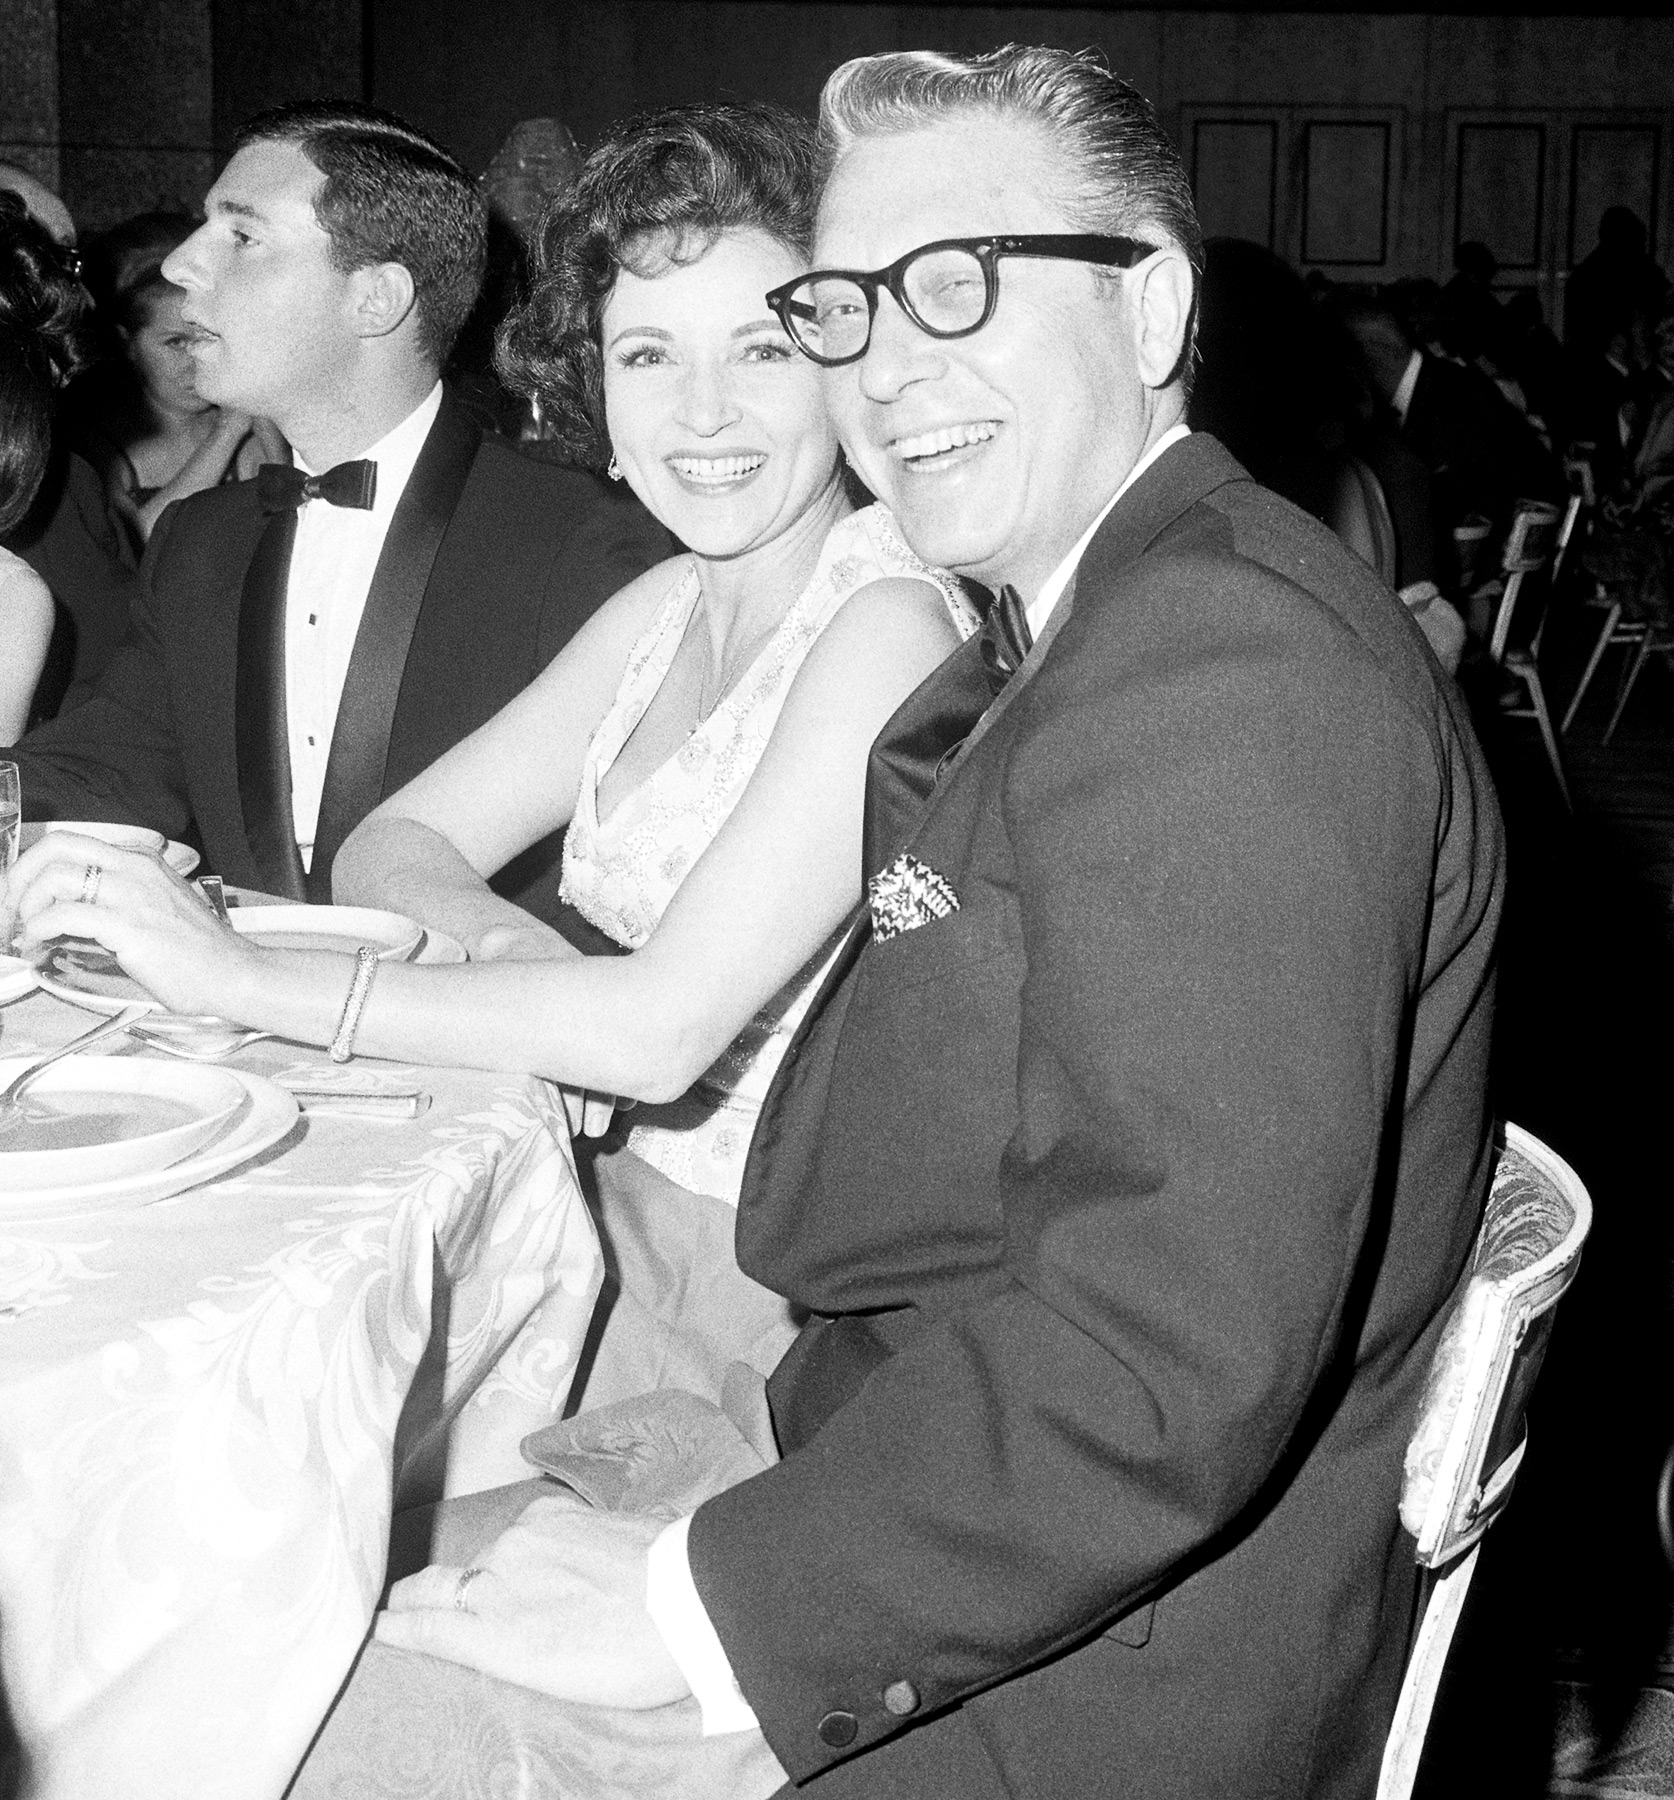 In 1963, White married TV personality Allen Ludden, who was her third husband. Prior to their union, she had been married to Army pilot Dick Barker and Hollywood agent Lane Allen.